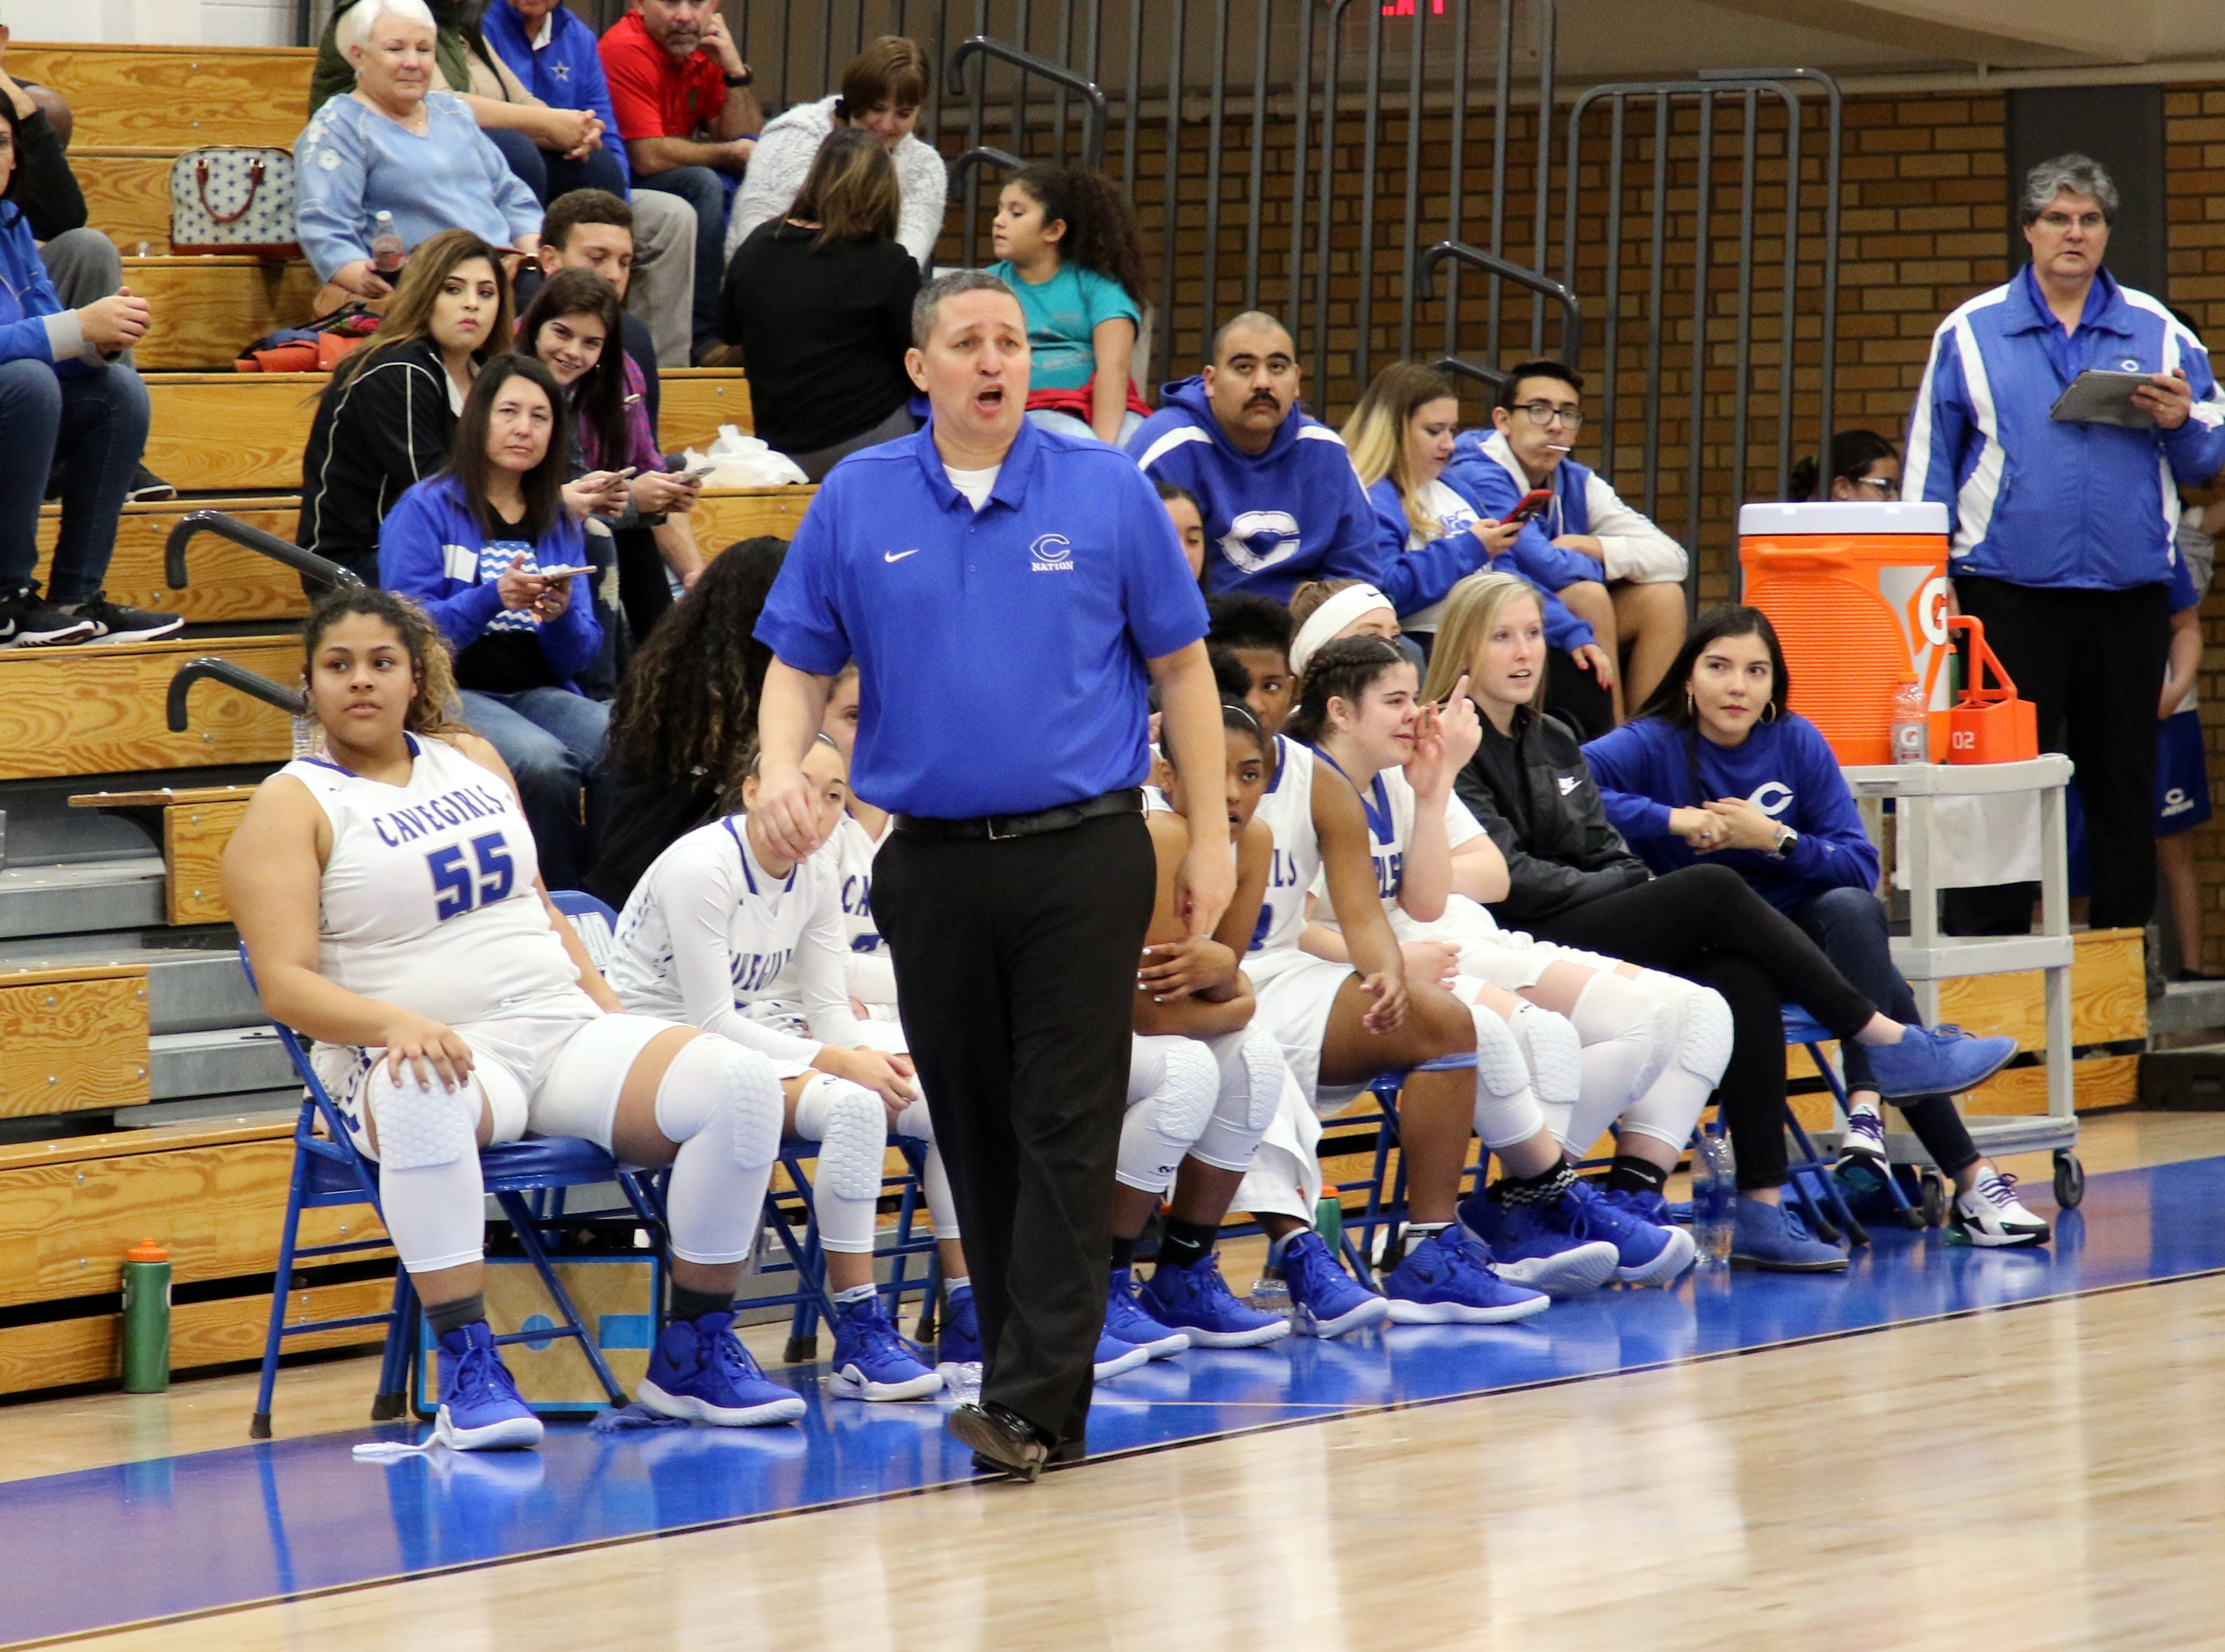 Carlsbad coach John Zumbrun yells out instructions during the first half of Friday's game against Mayfield.